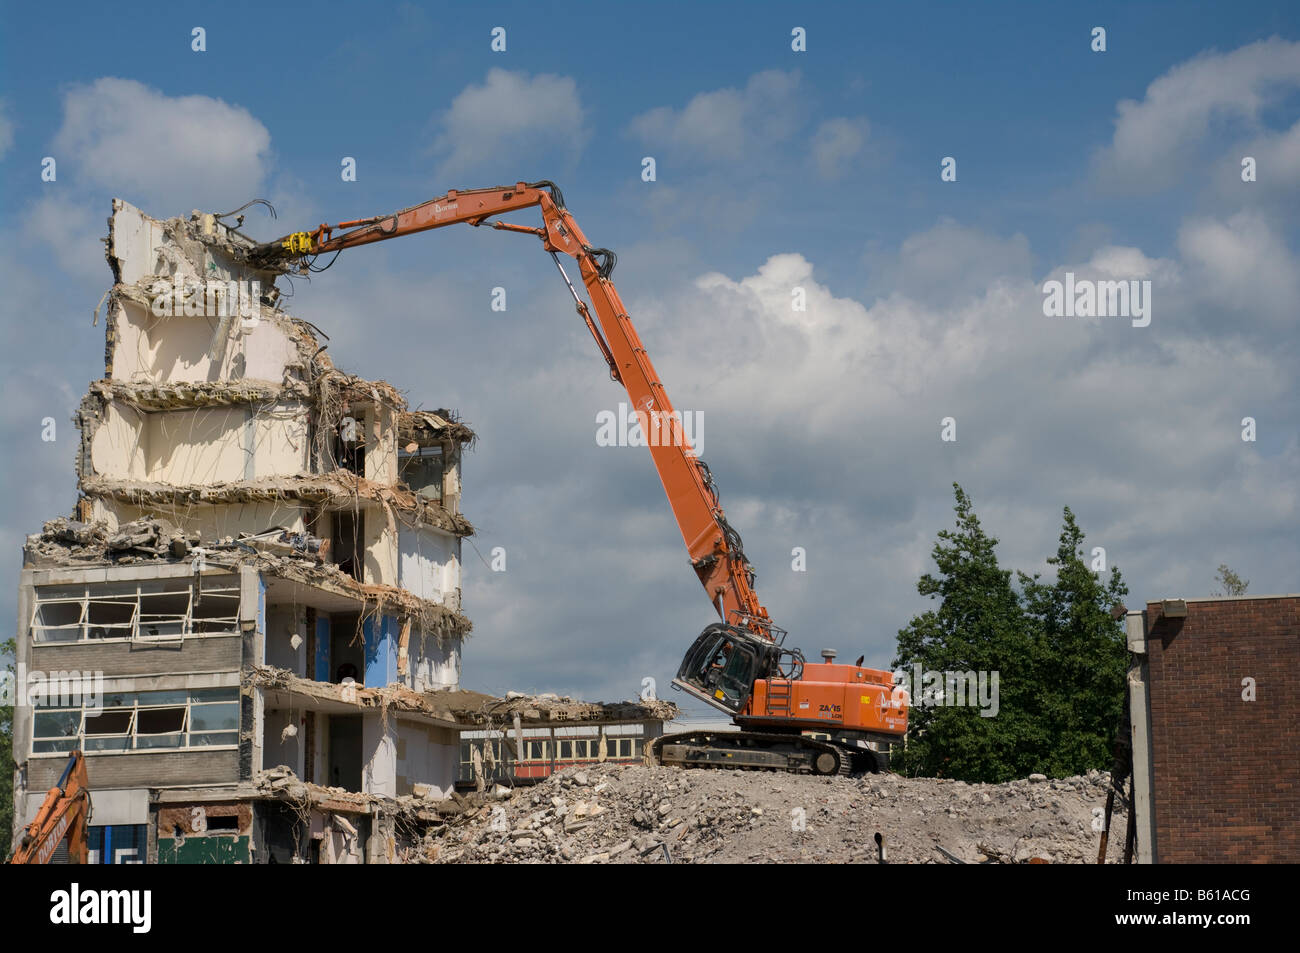 Building Being Demolished By a Daxis 470 LCH Demolition vehicle Demolishing building - Stock Image